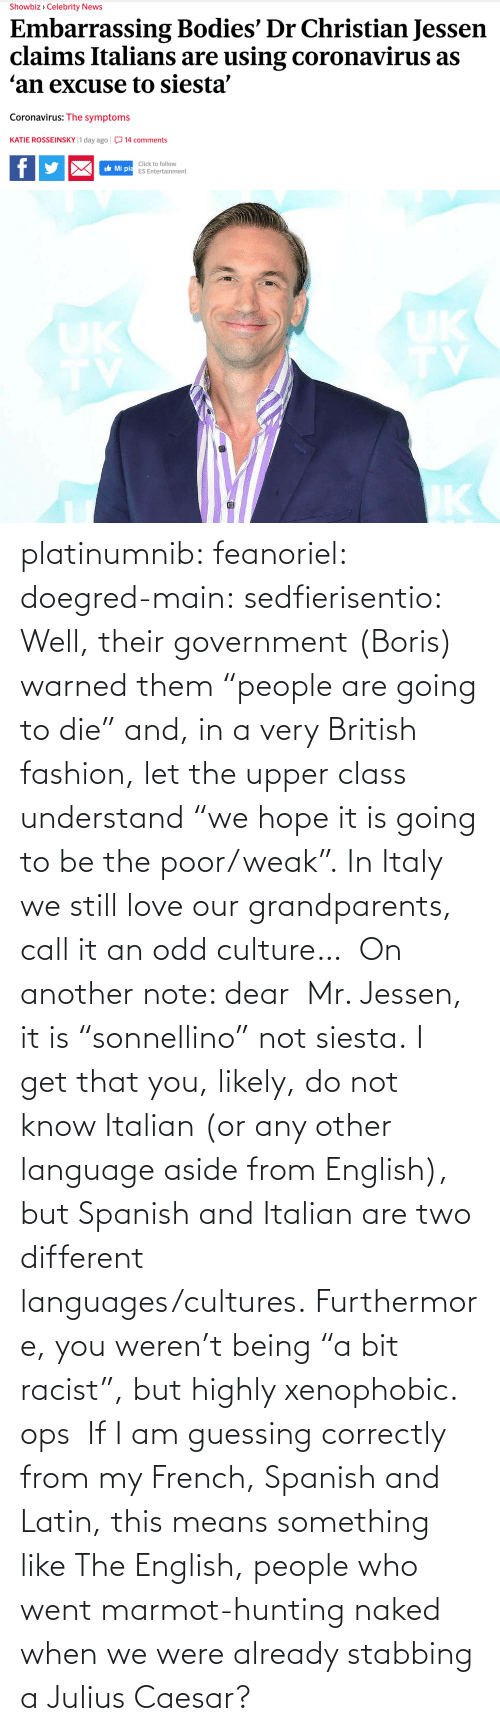 "Fashion, Gif, and Love: platinumnib:  feanoriel: doegred-main:  sedfierisentio:  Well, their government (Boris) warned them ""people are going to die"" and, in a very British fashion, let the upper class understand ""we hope it is going to be the poor/weak"". In Italy we still love our grandparents, call it an odd culture…  On another note: dear  Mr. Jessen, it is ""sonnellino"" not siesta. I get that you, likely, do not know Italian (or any other language aside from English), but Spanish and Italian are two different languages/cultures. Furthermore, you weren't being ""a bit racist"", but highly xenophobic.   ops   If I am guessing correctly from my French, Spanish and Latin, this means something like The English, people who went marmot-hunting naked when we were already stabbing a Julius Caesar?"